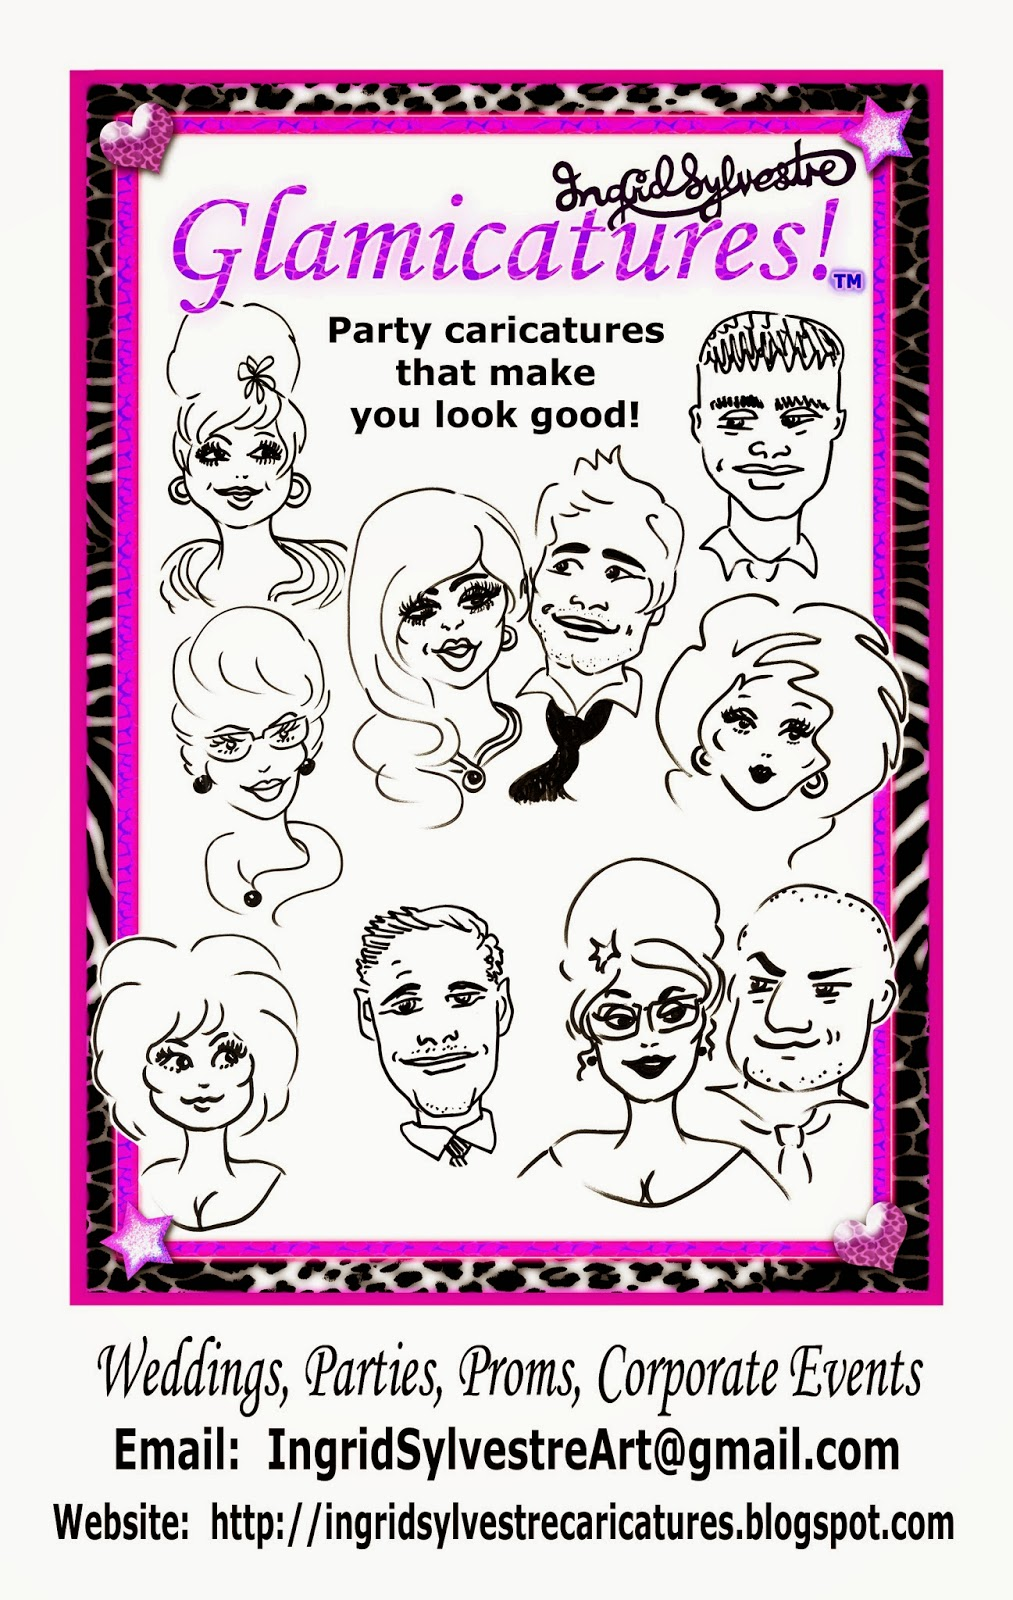 North East Wedding Entertainment ideas Wedding planning ideas Wedding ideas Gay Wedding ideas Gay Weddings Gay Wedding Entertainment ideas North East Party Entertainment ideas Party Caricatures Corporate Event Entertainment Corporate Caricatures Proms Caricatures Prom Entertainment ideas Newcastle upon Tyne Durham Sunderland Middlesbrough Teesside Northumberland Yorkshire Caricaturist Ingrid Sylvestre Caricature Artist UK